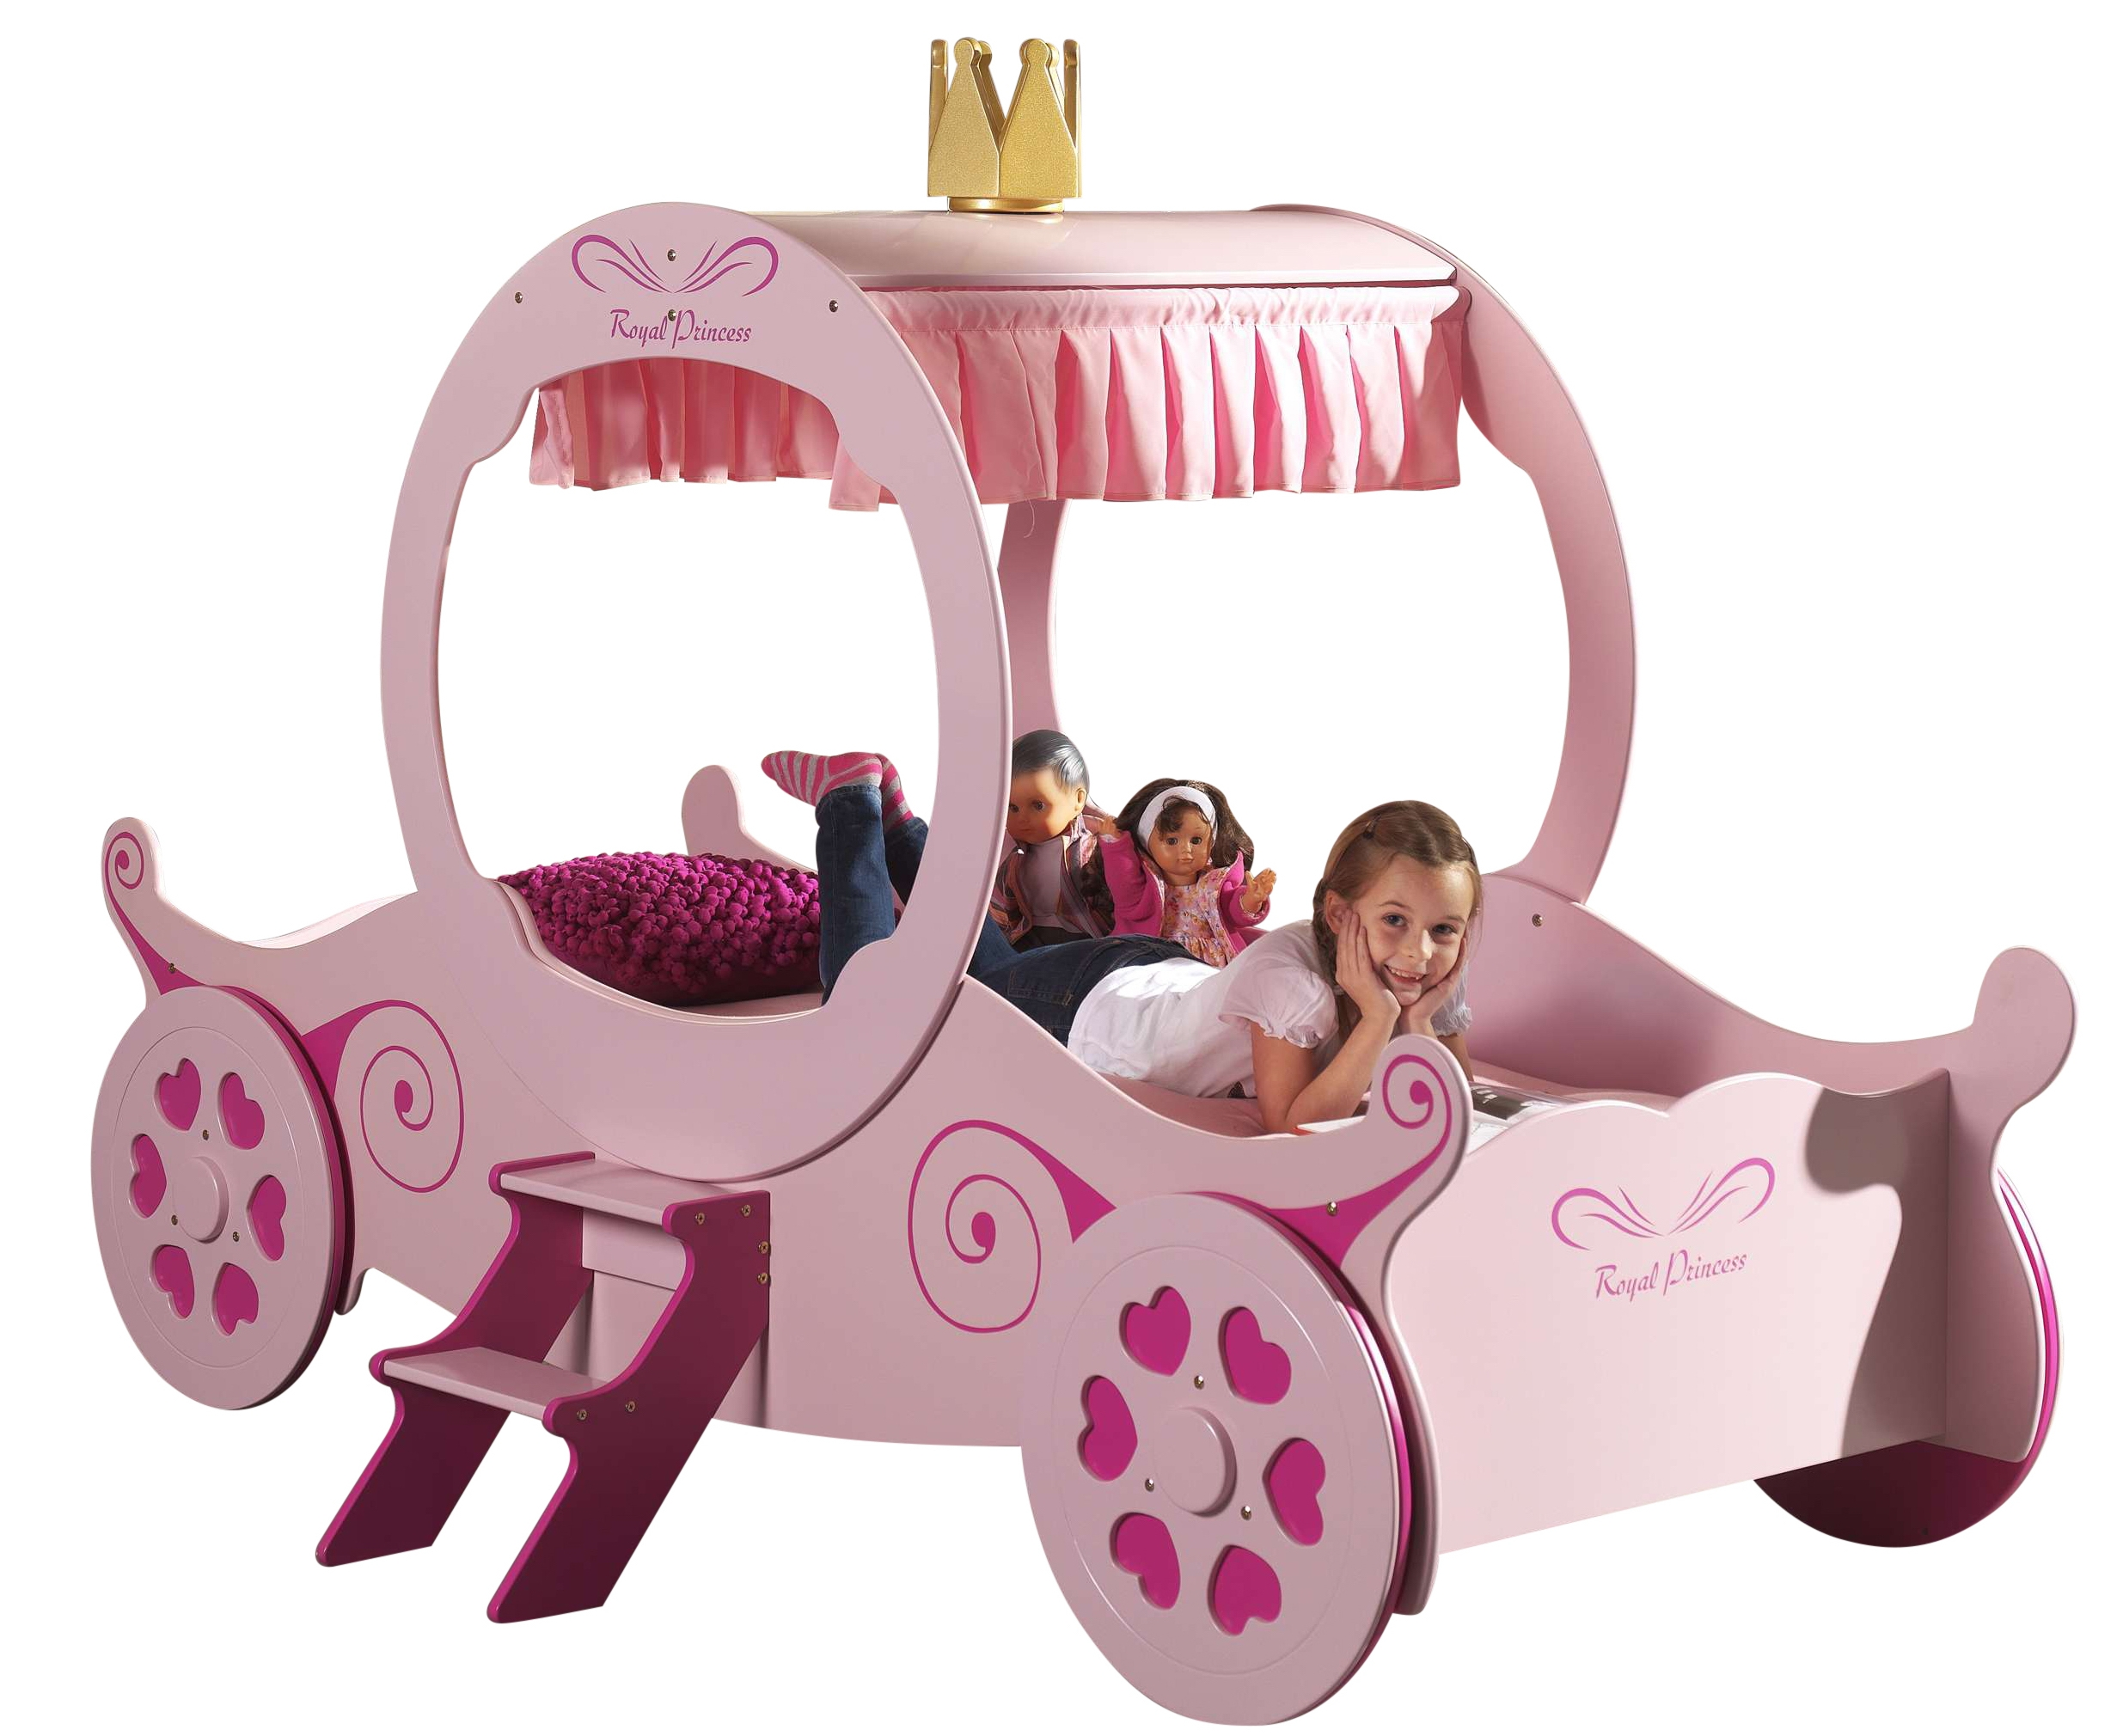 lit enfant carrosse cendrillon. Black Bedroom Furniture Sets. Home Design Ideas